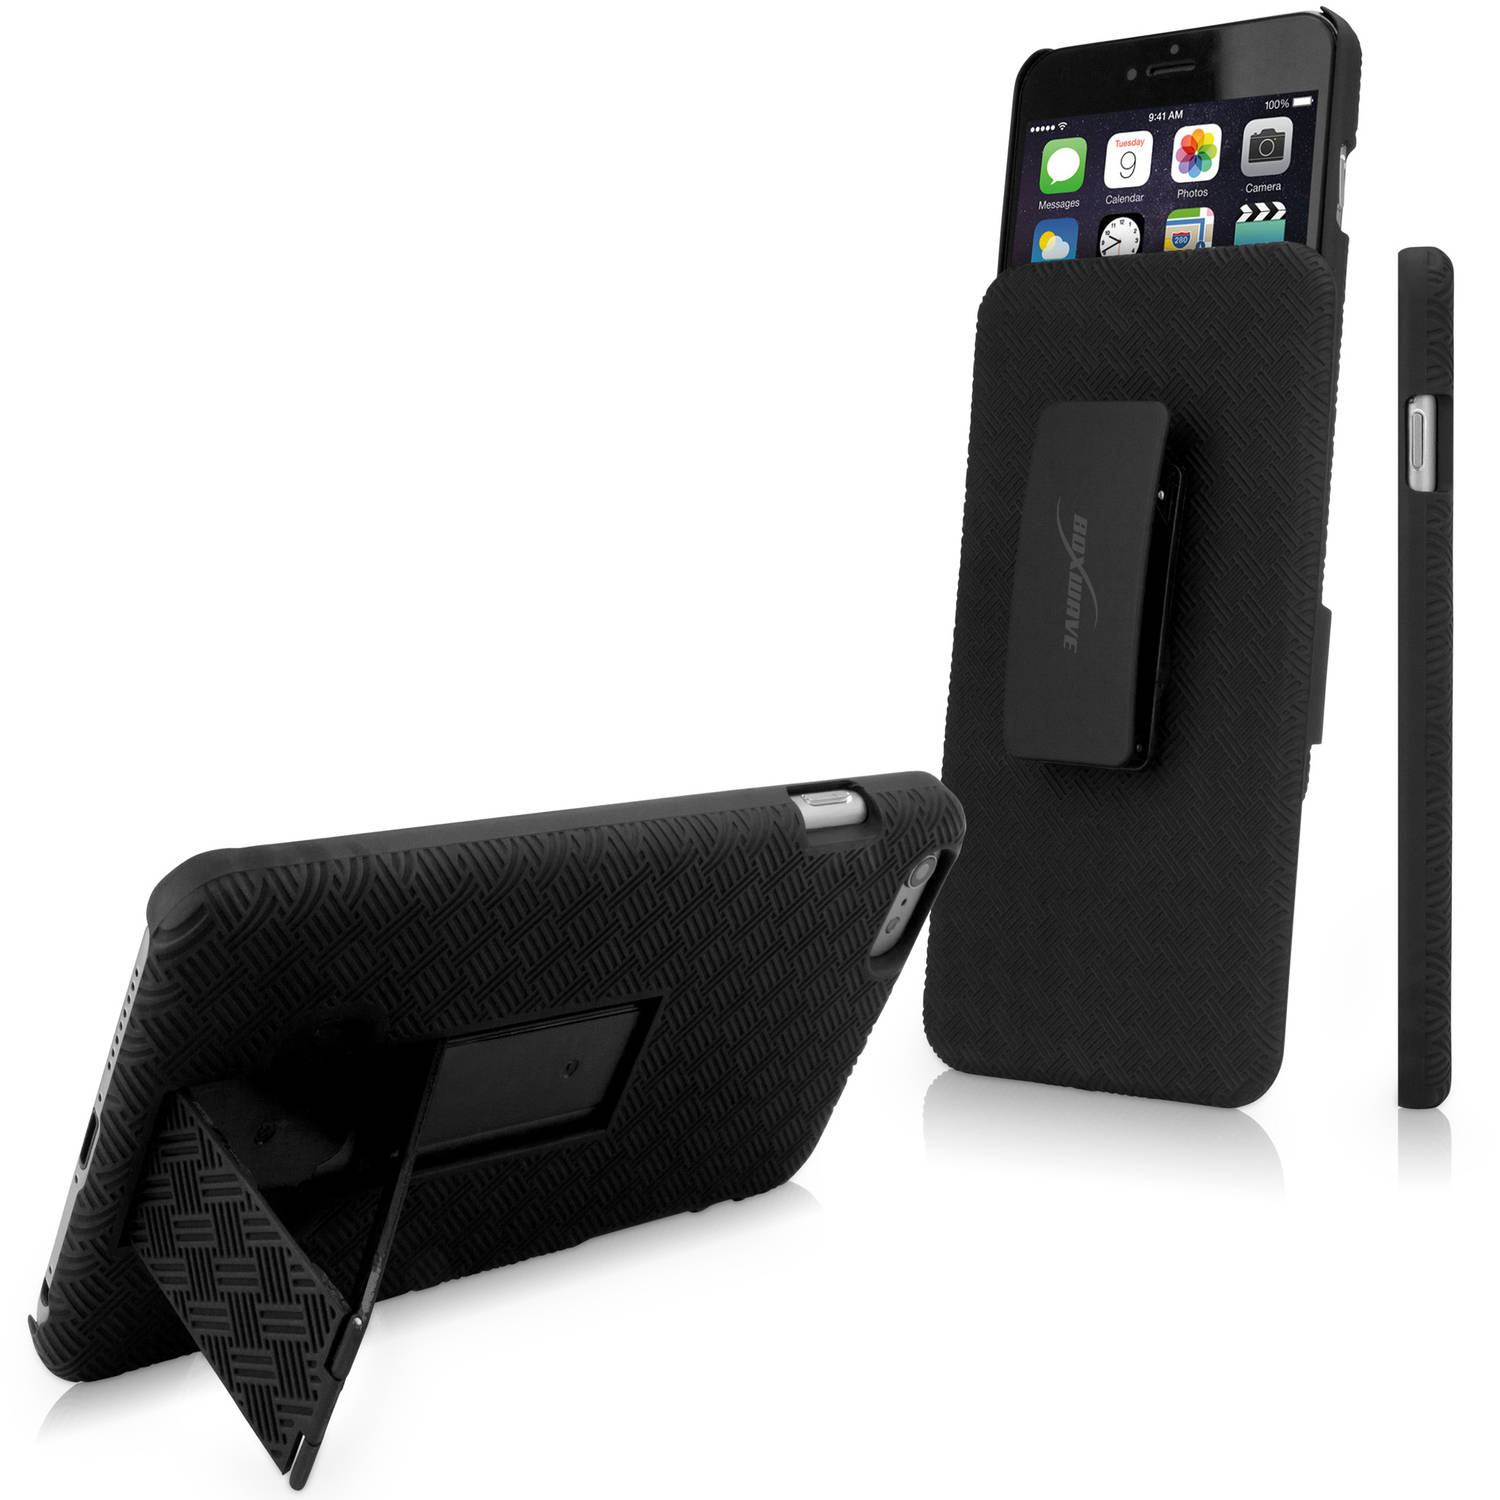 BoxWave Dual+ Holster Case for Apple iPhone 6 Plus/6s Plus